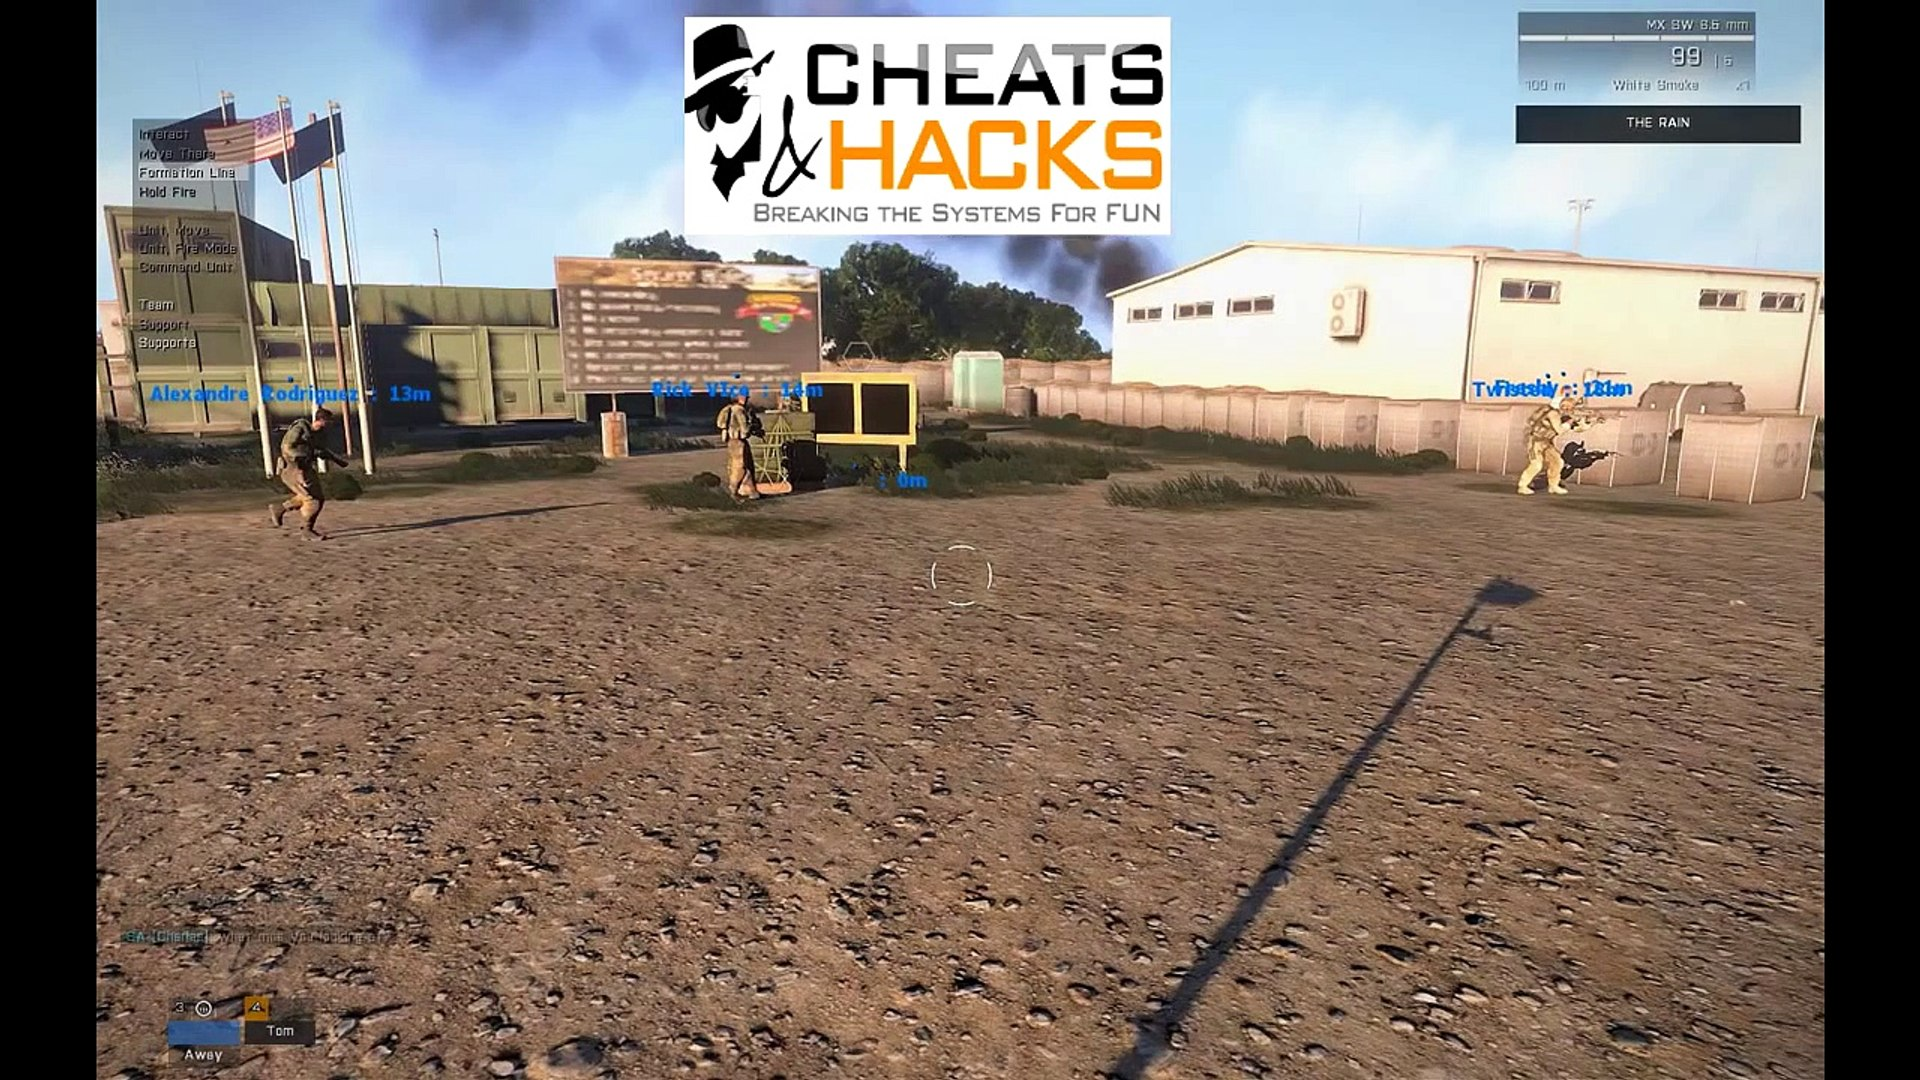 Arma 3 Hacks [Multiplayer] Aimbot, Spawn Items, Trolling [Working]